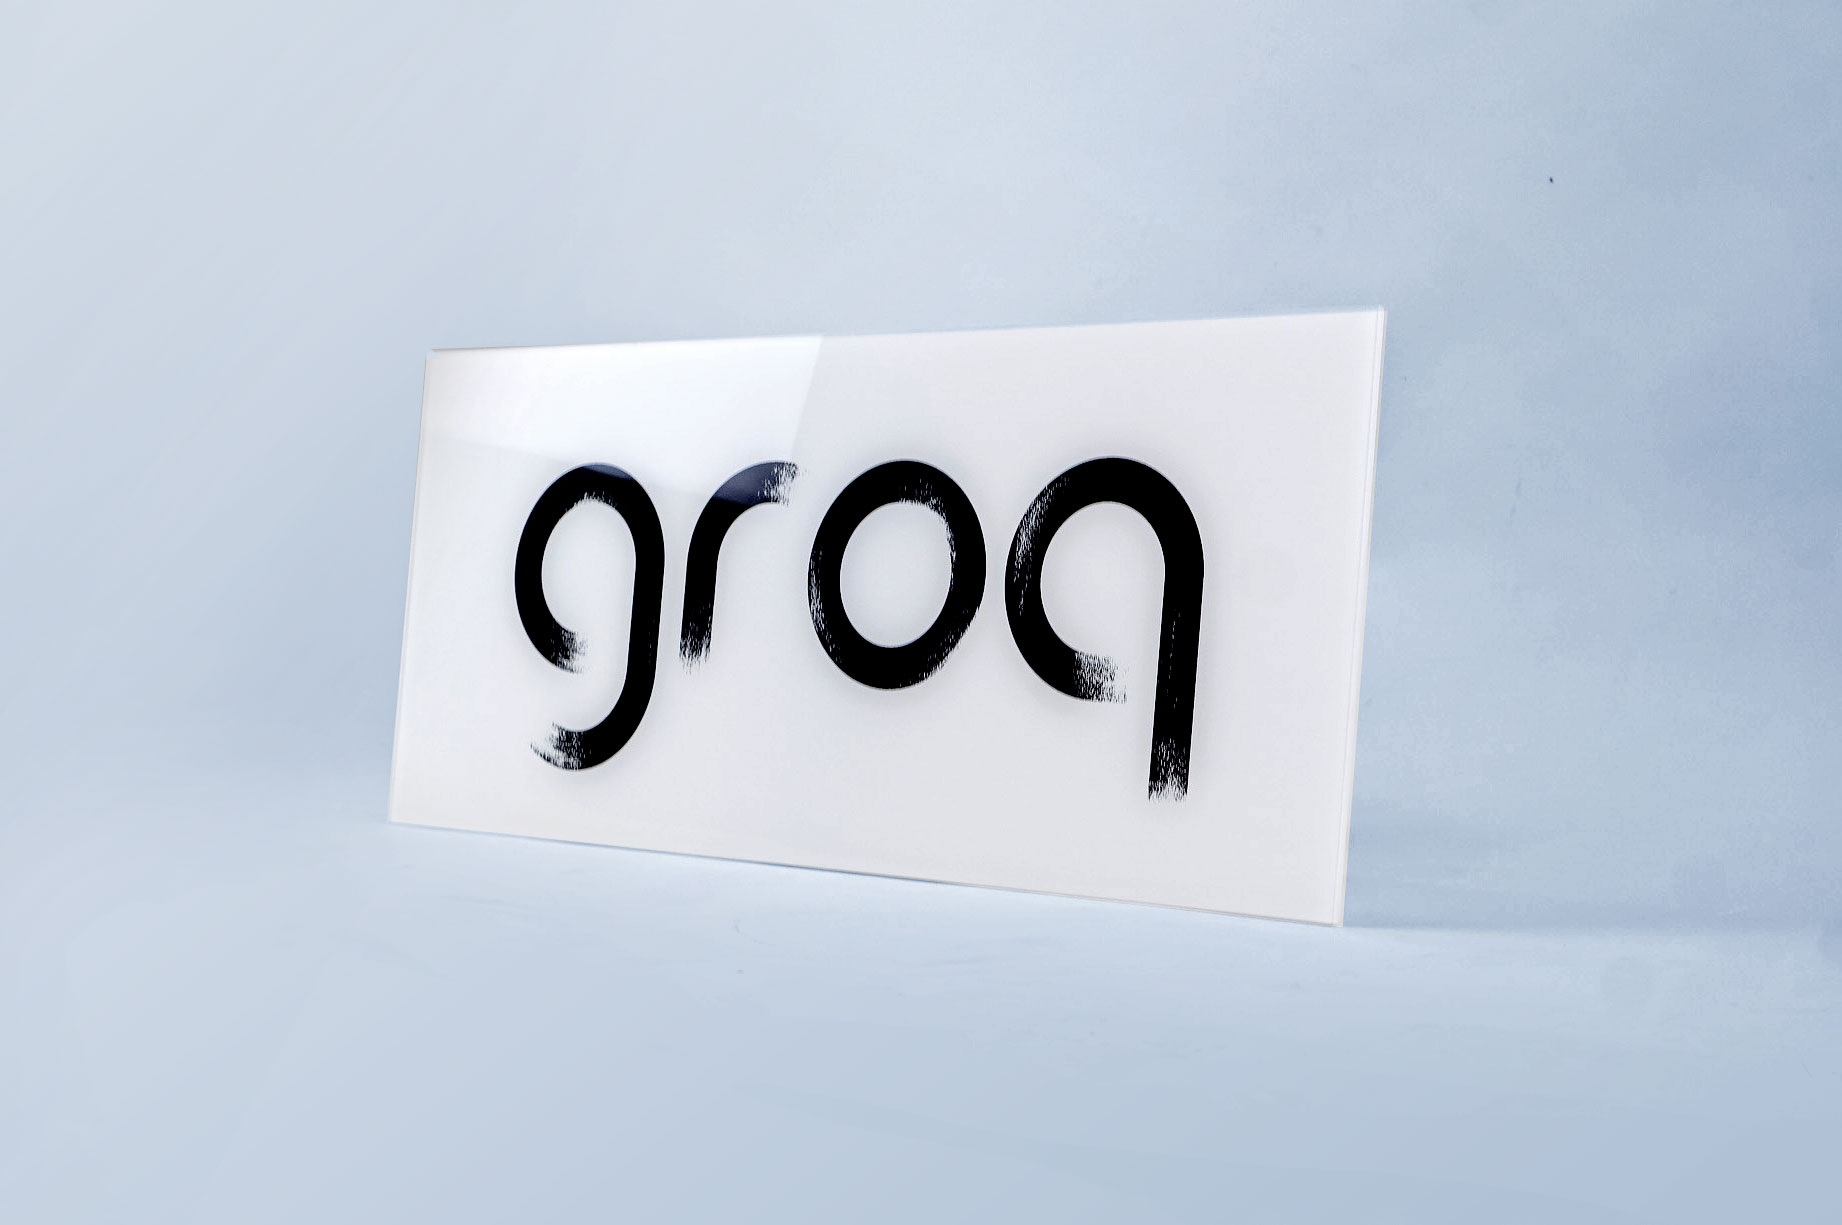 Glassy black and white sign with black brushstroke logo for Groq, a Palo Alto based company developing an integrated circuit developed specifically for machine learning.